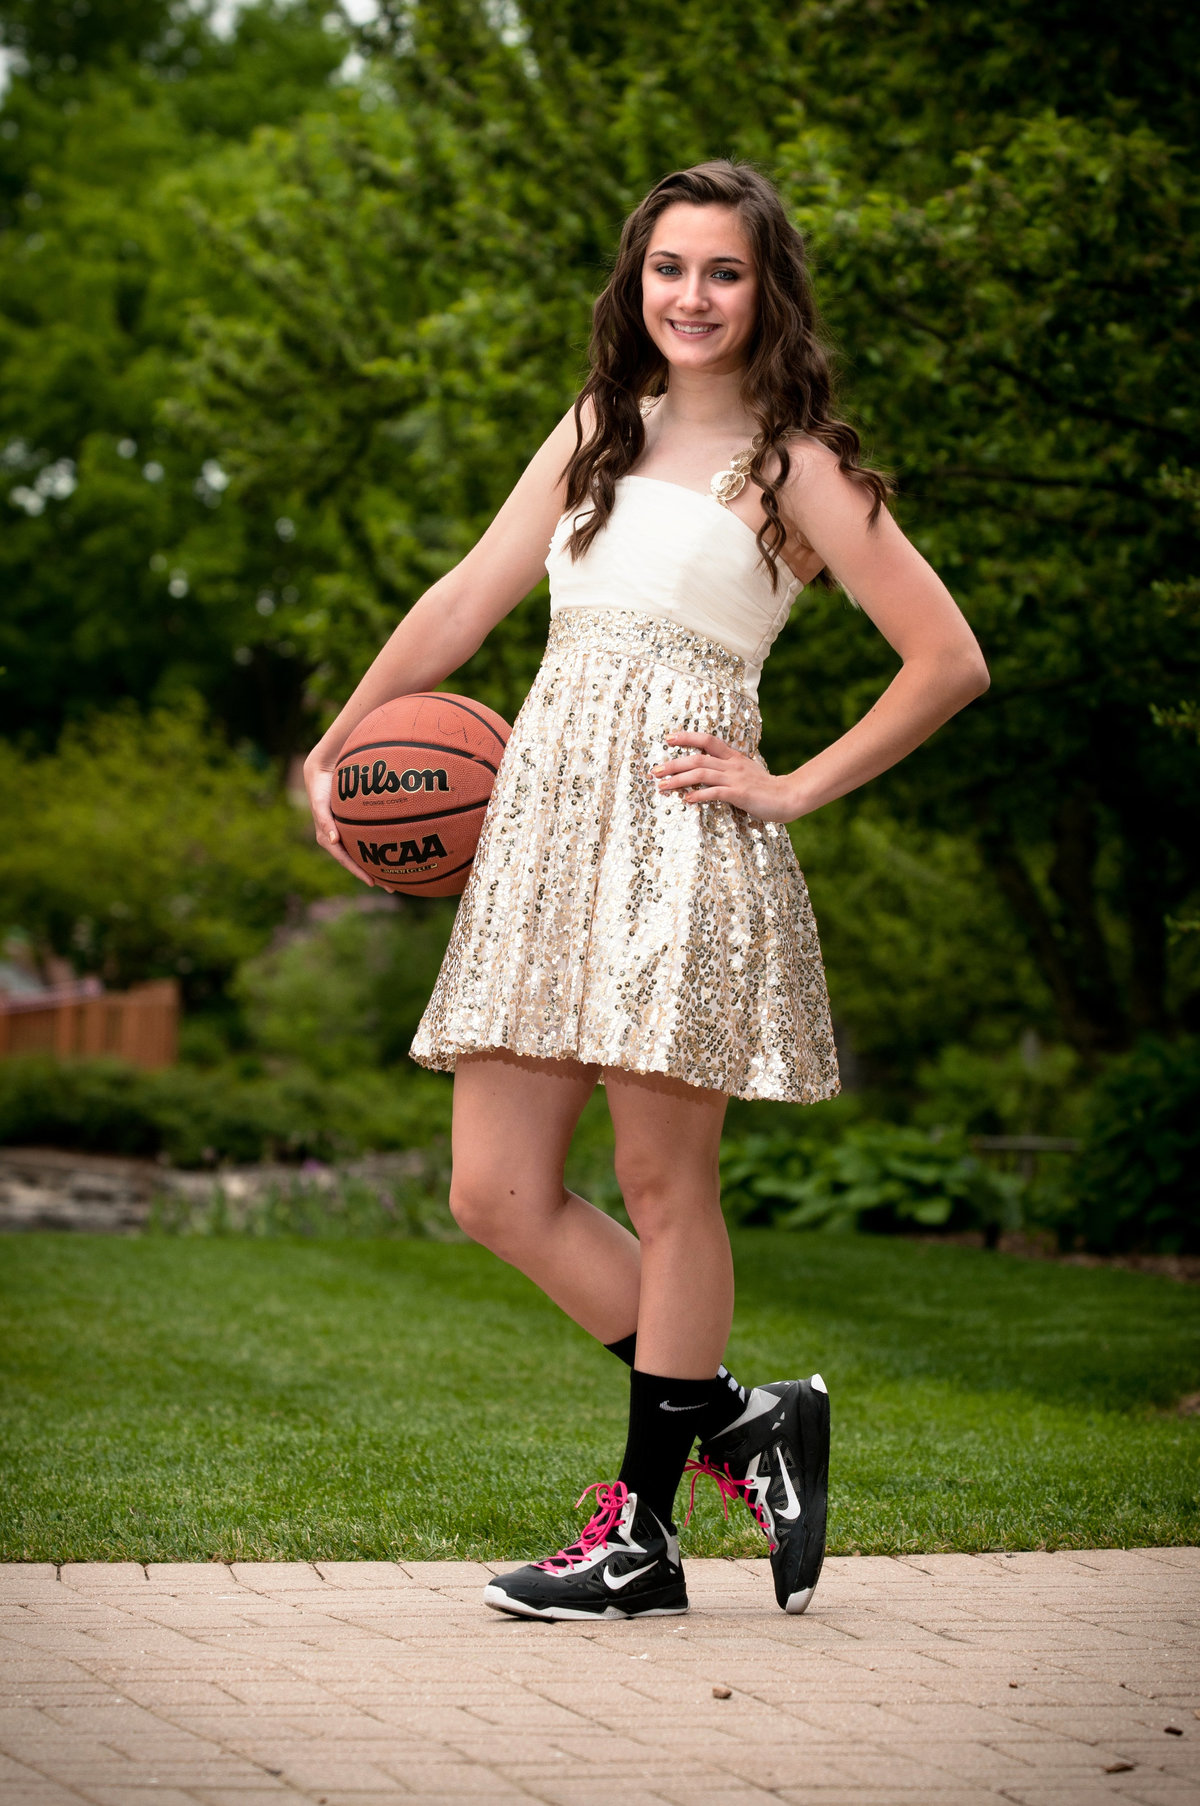 Lilacia-Park-basketball-spring-senior-portrait-Lombard-Illinois